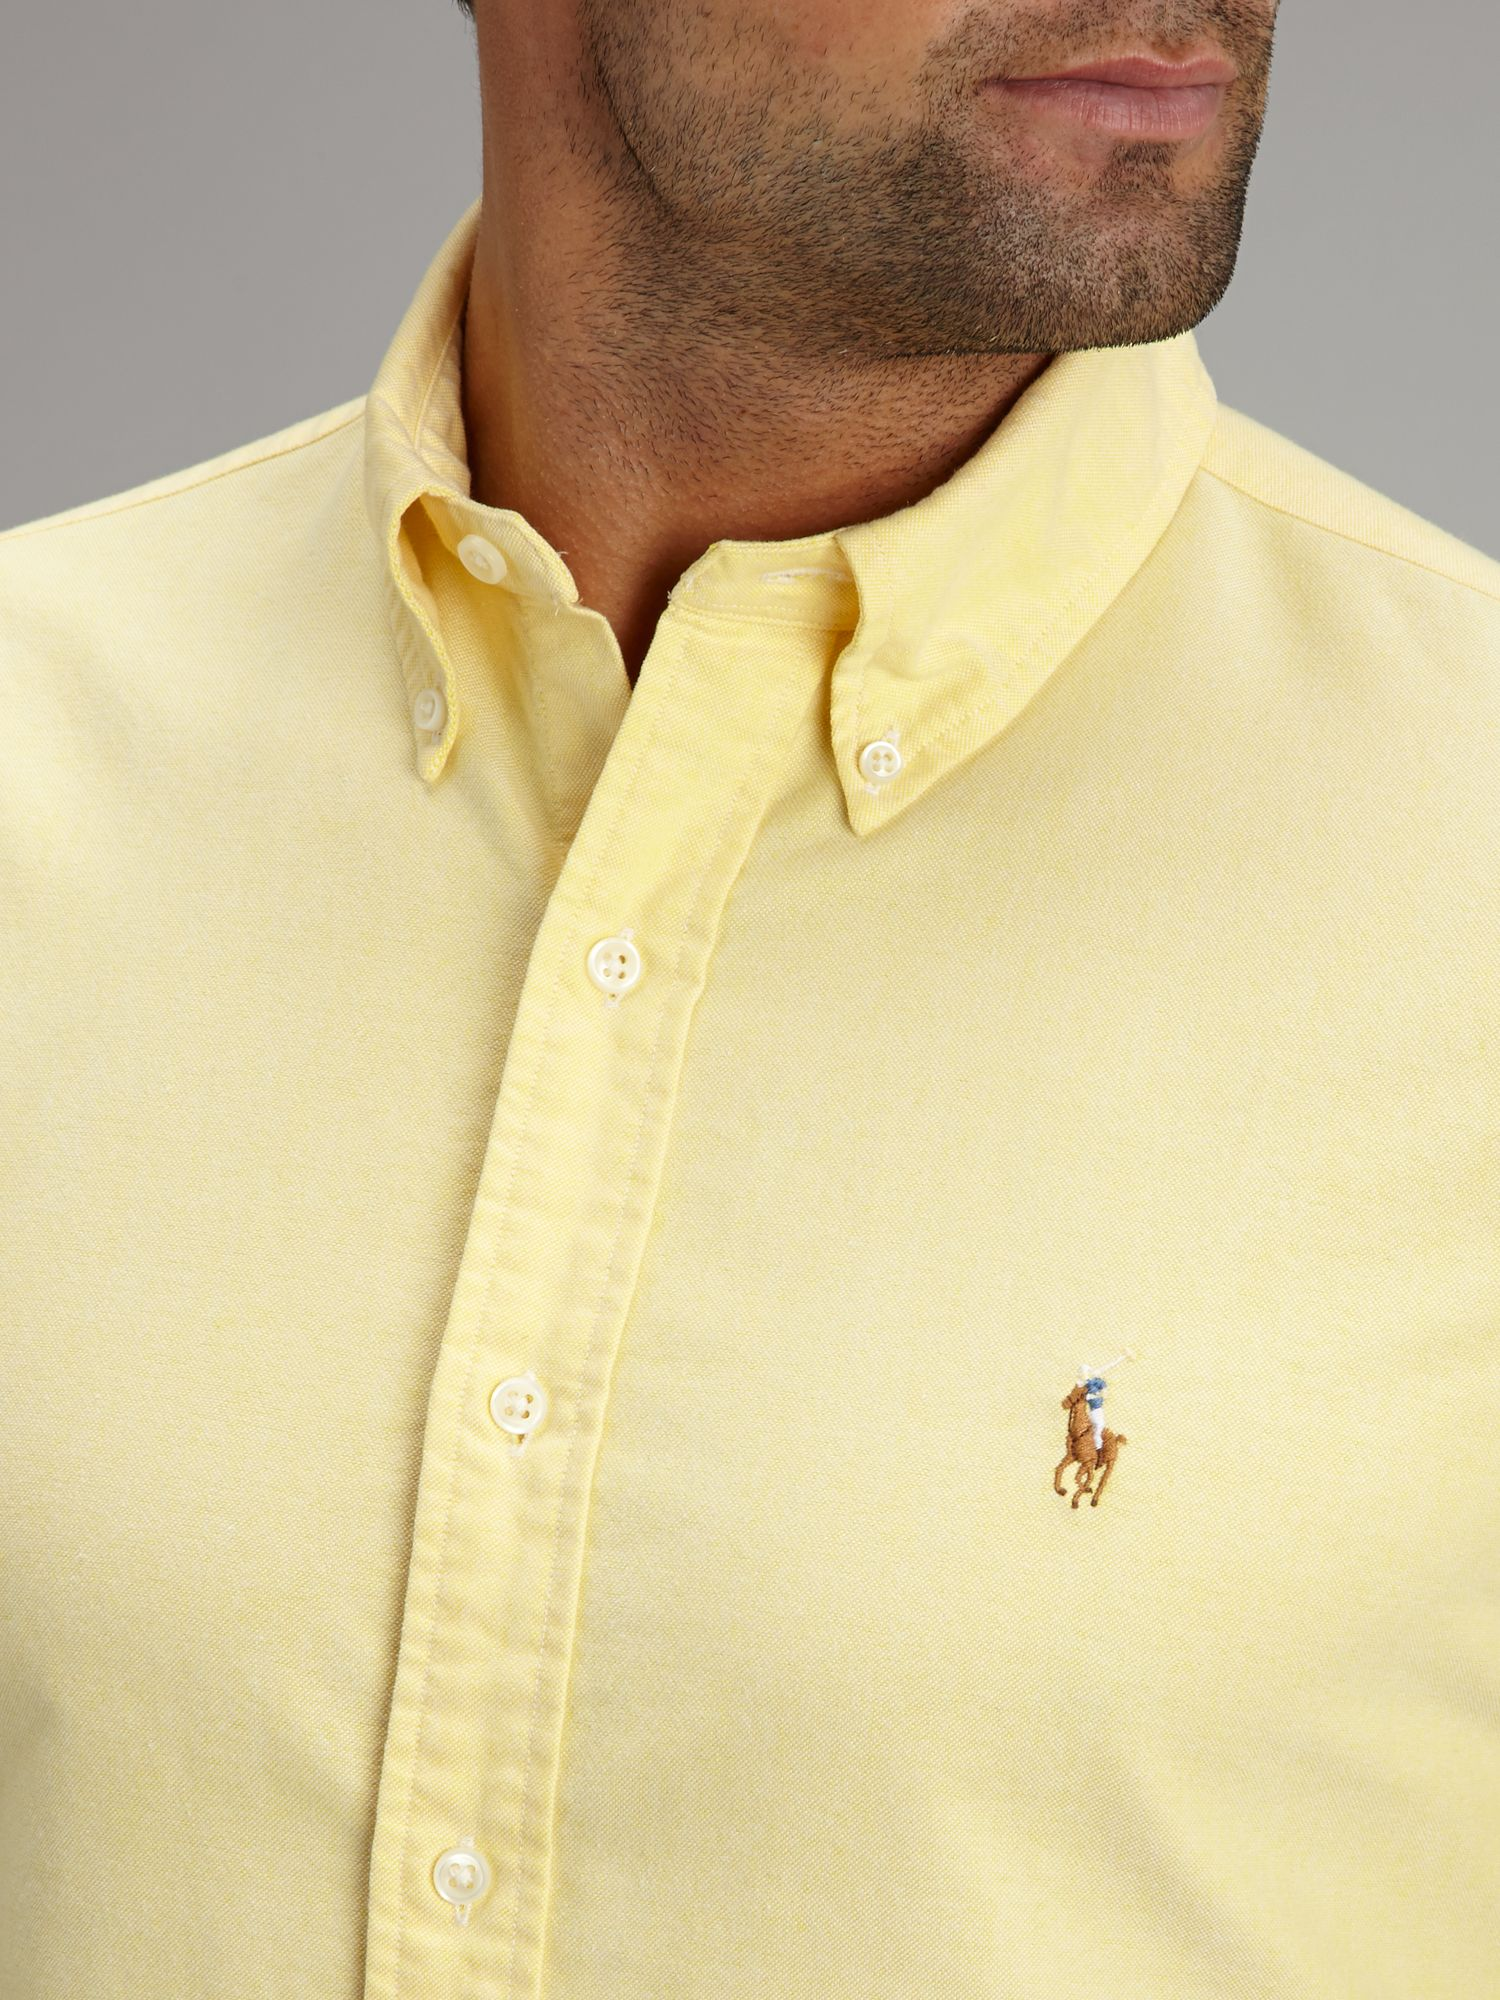 polo ralph lauren classic long sleeve shirt in yellow for men lyst. Black Bedroom Furniture Sets. Home Design Ideas